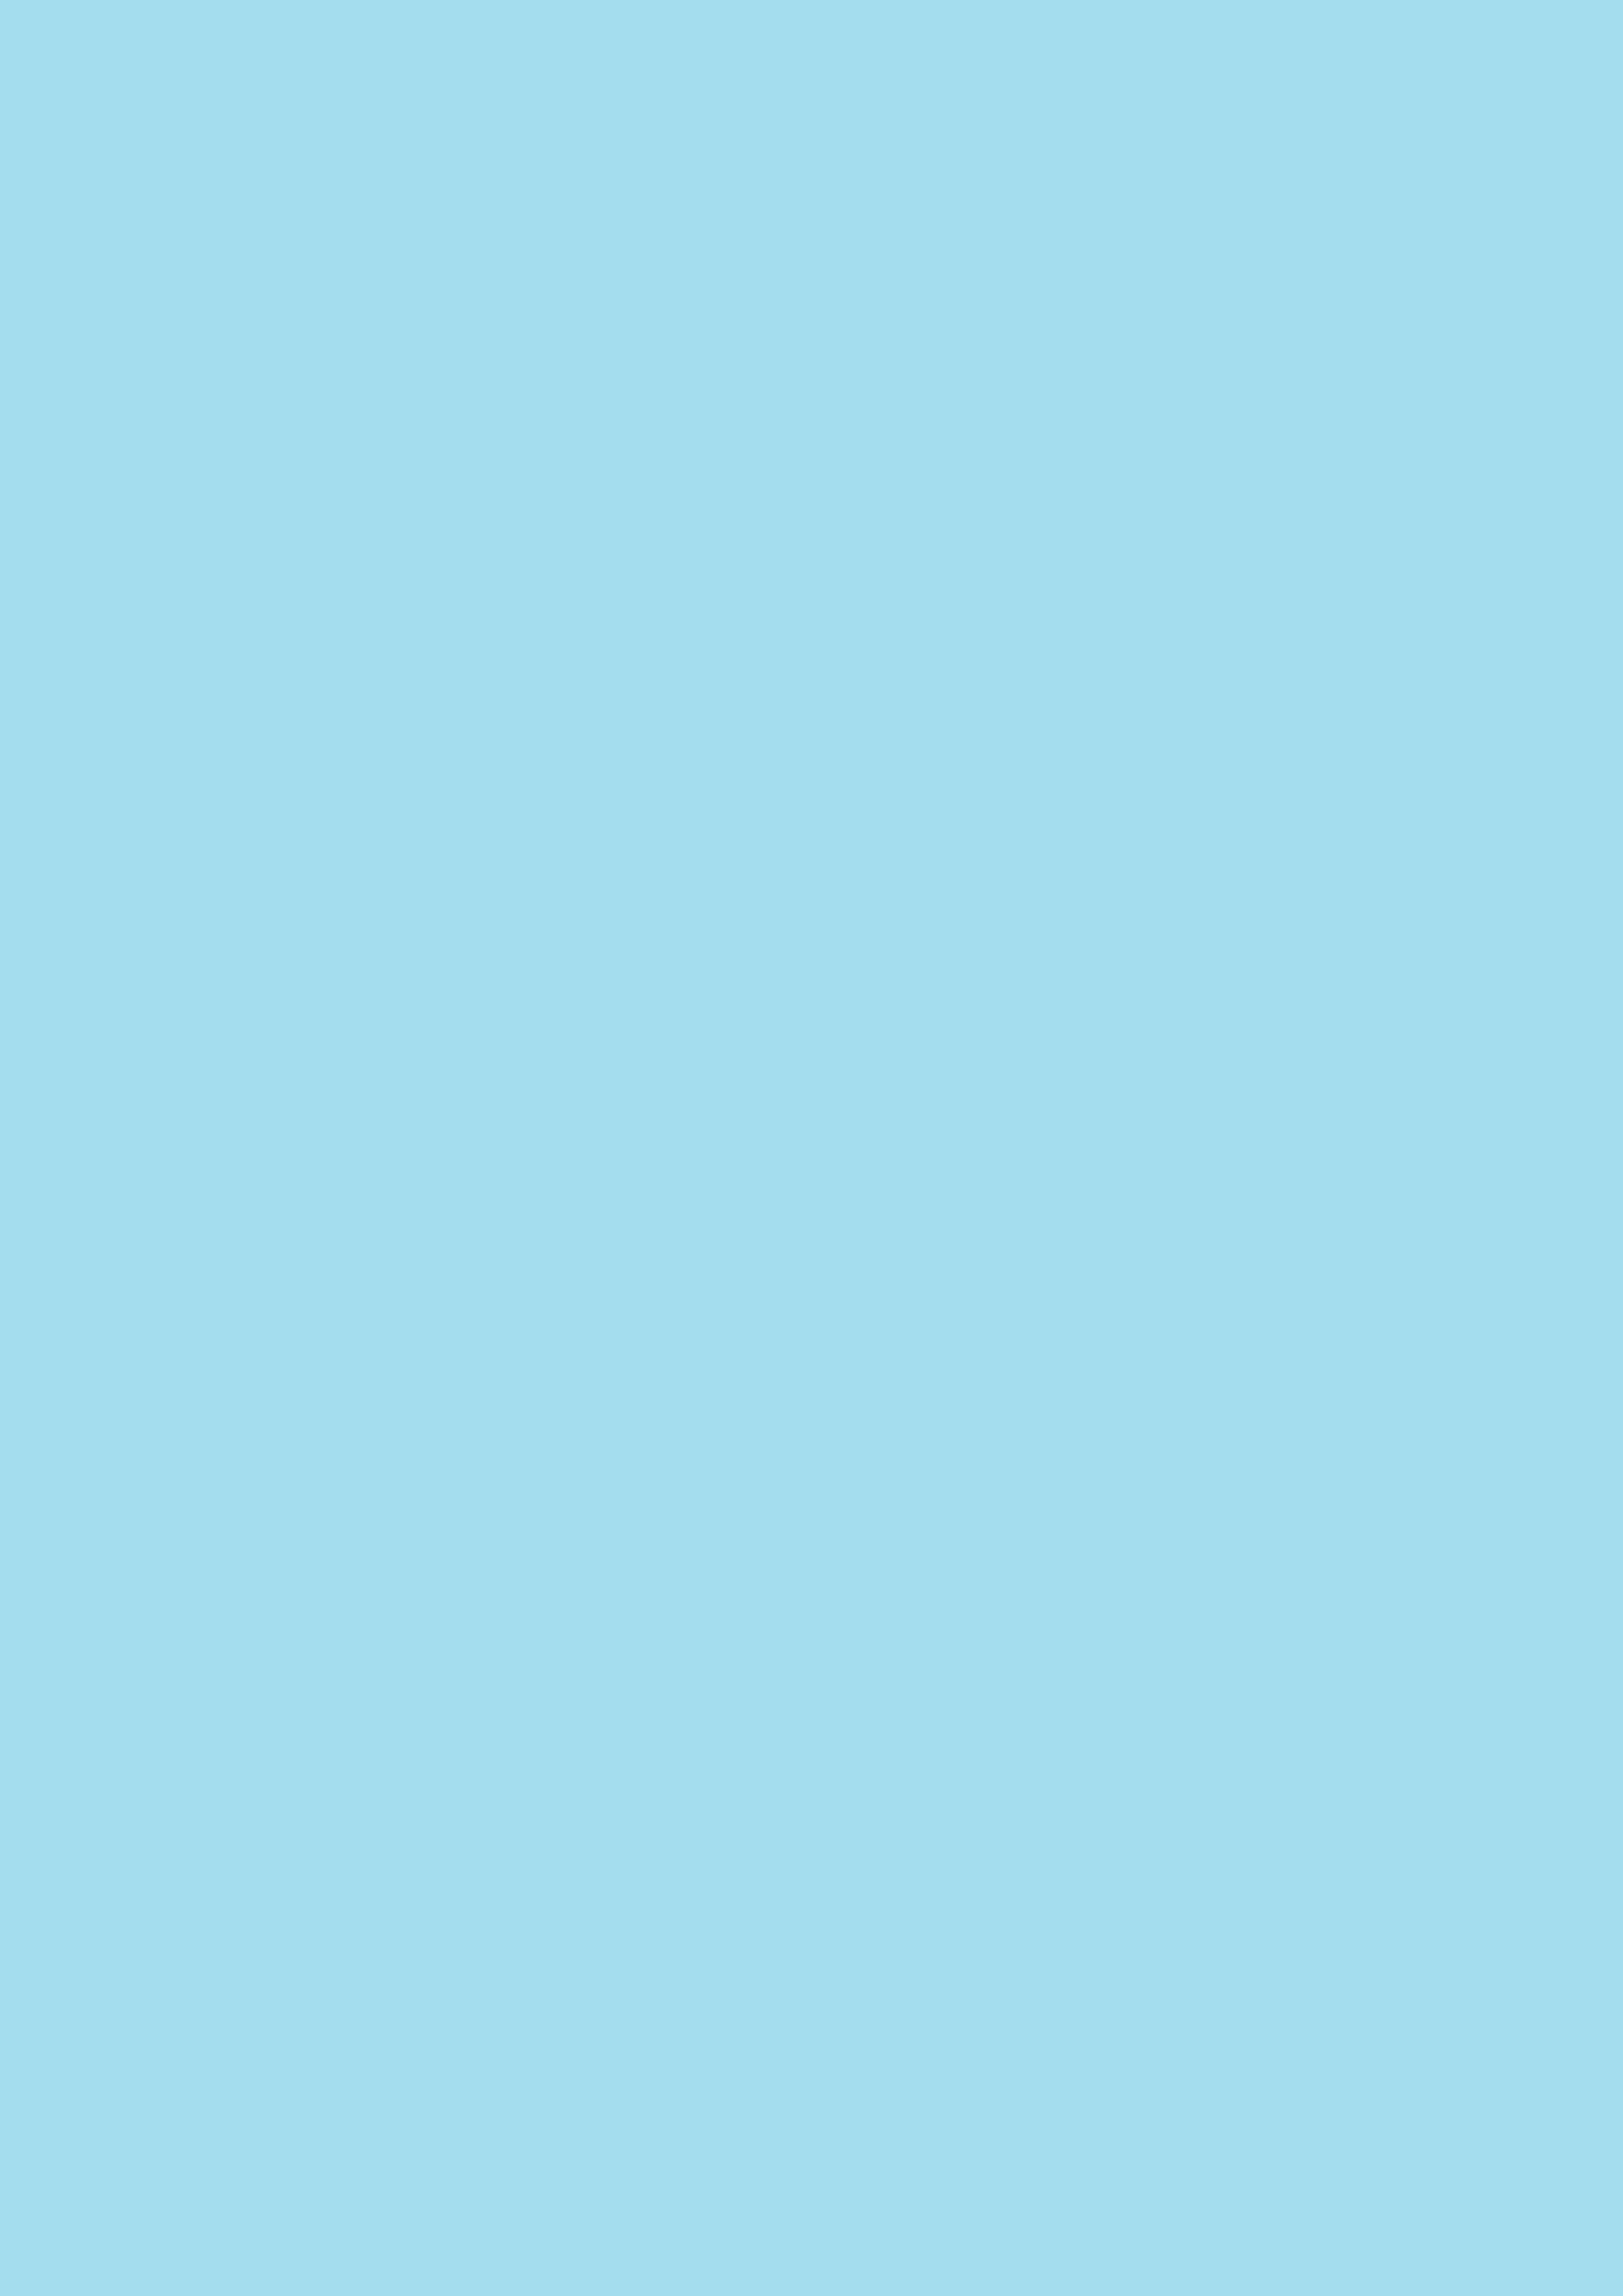 2480x3508 Non-photo Blue Solid Color Background